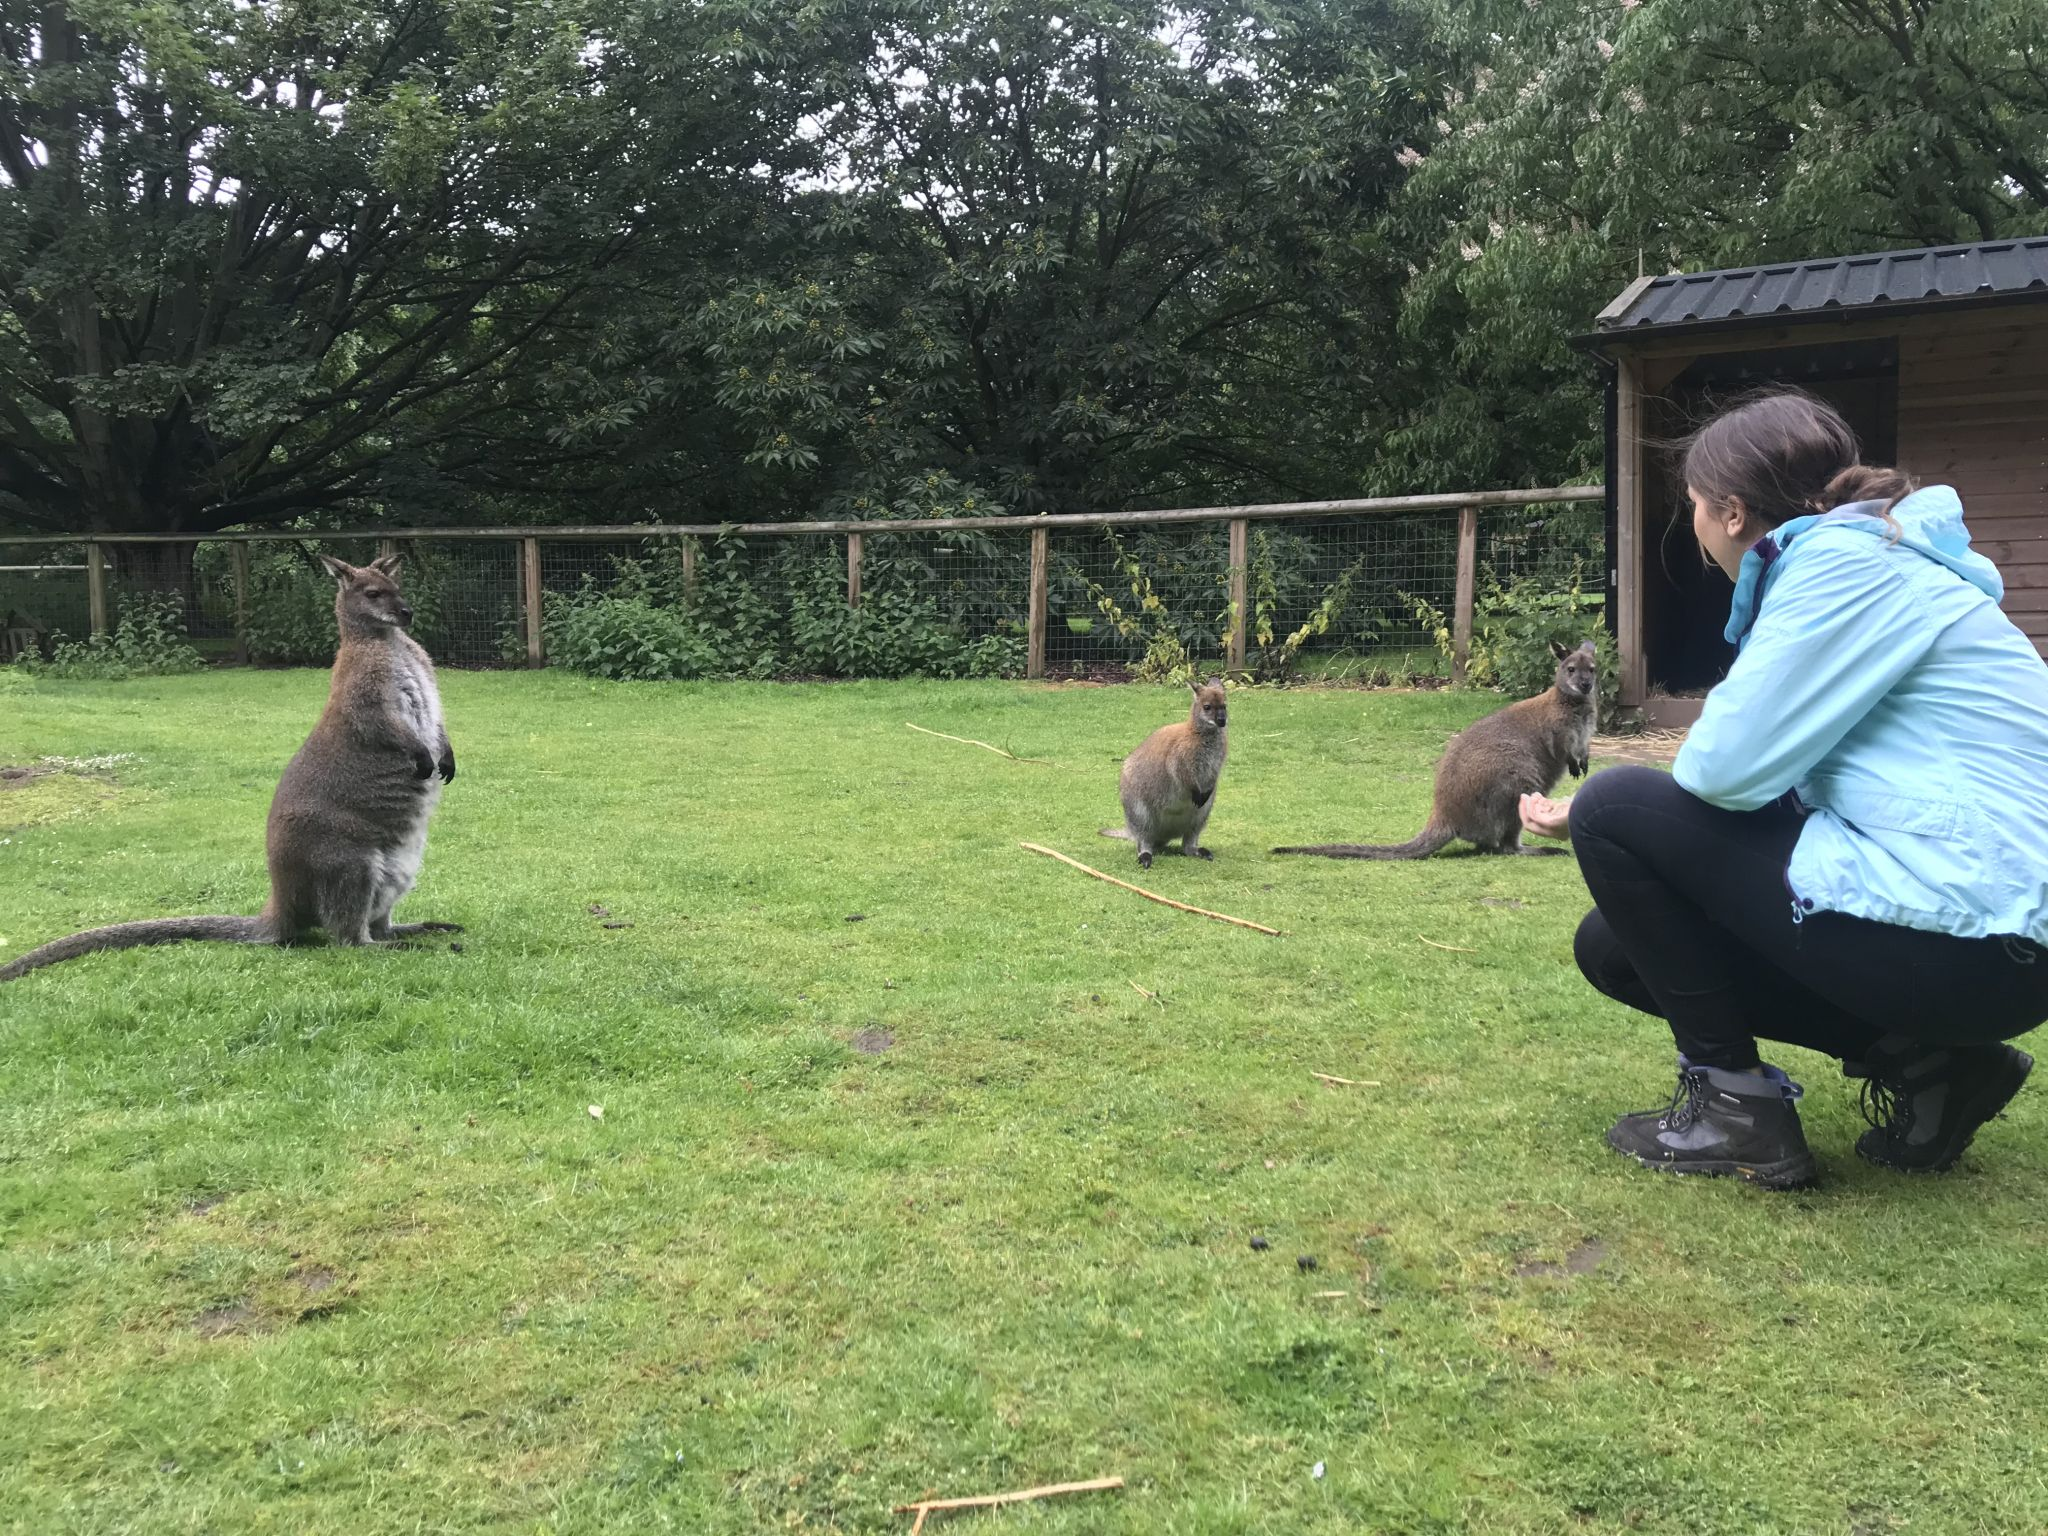 famous wallaby at askham bryan wildlife park